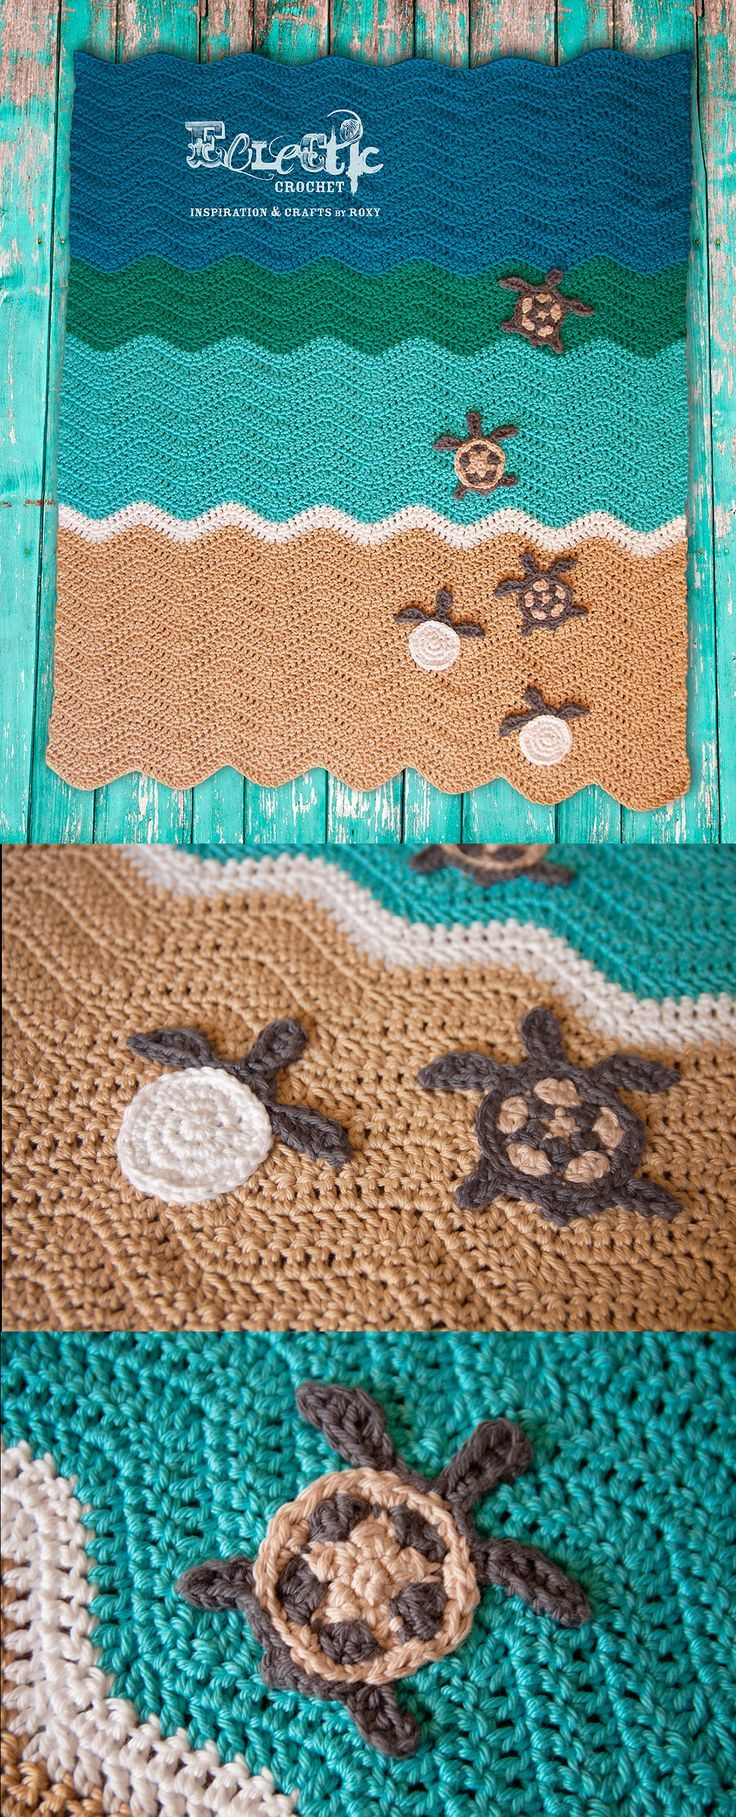 "I saw a crochet turtle blanket that Planet June by June Gilbank did & just had to make one too! For the turtle appliqué I got the pattern from ""Turtle Applique by Patricia Eggen"" (http://www.ravelry.com/patterns/library/turtle-applique) and the blanket pattern from ""Pretty Ripple Baby Blanket by Lauren Brown"" (http://daisycottagedesigns.net/crochet/free-crochet-pattern-ripple-baby-blanket/)."